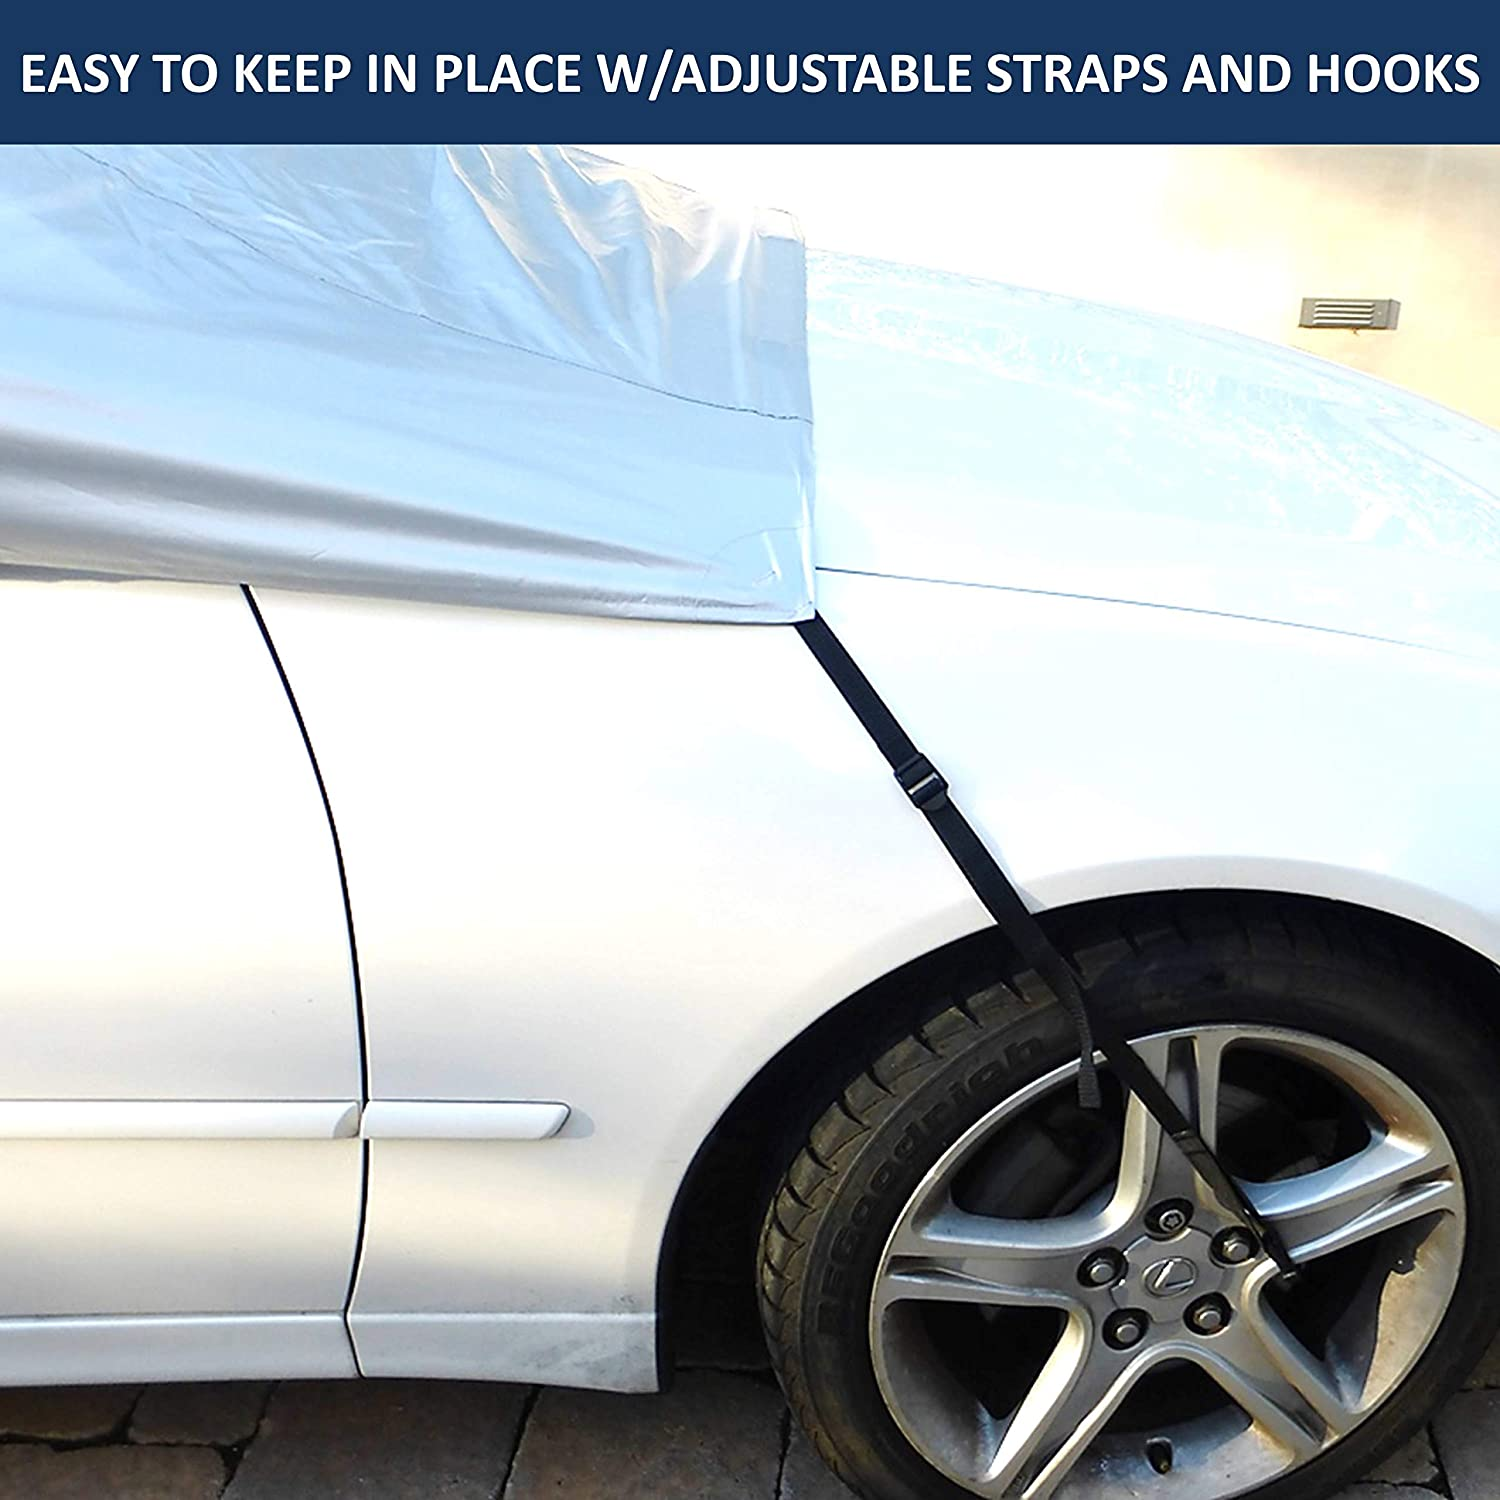 Ice Car Windshield Full Top Covers Back and Front No More Scraping Snow Fits Small to Mid-Sized Vehicles Leaves Keeps Your Car Cool from Harsh Sun